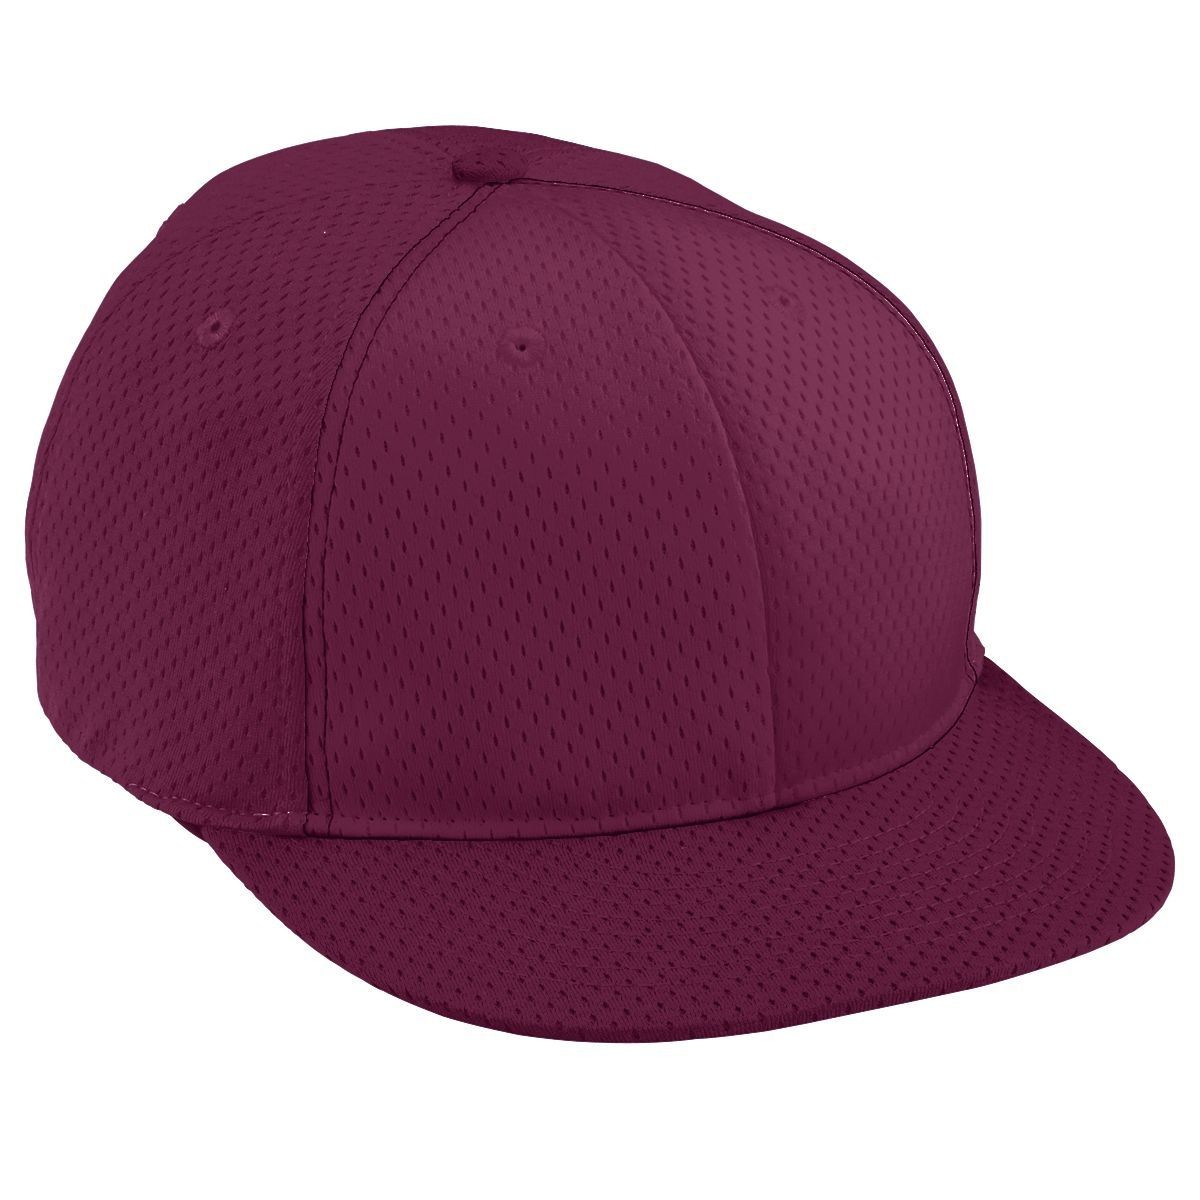 Youth Athletic Mesh Flat Bill Cap - MAROON/MAROON/MAROON